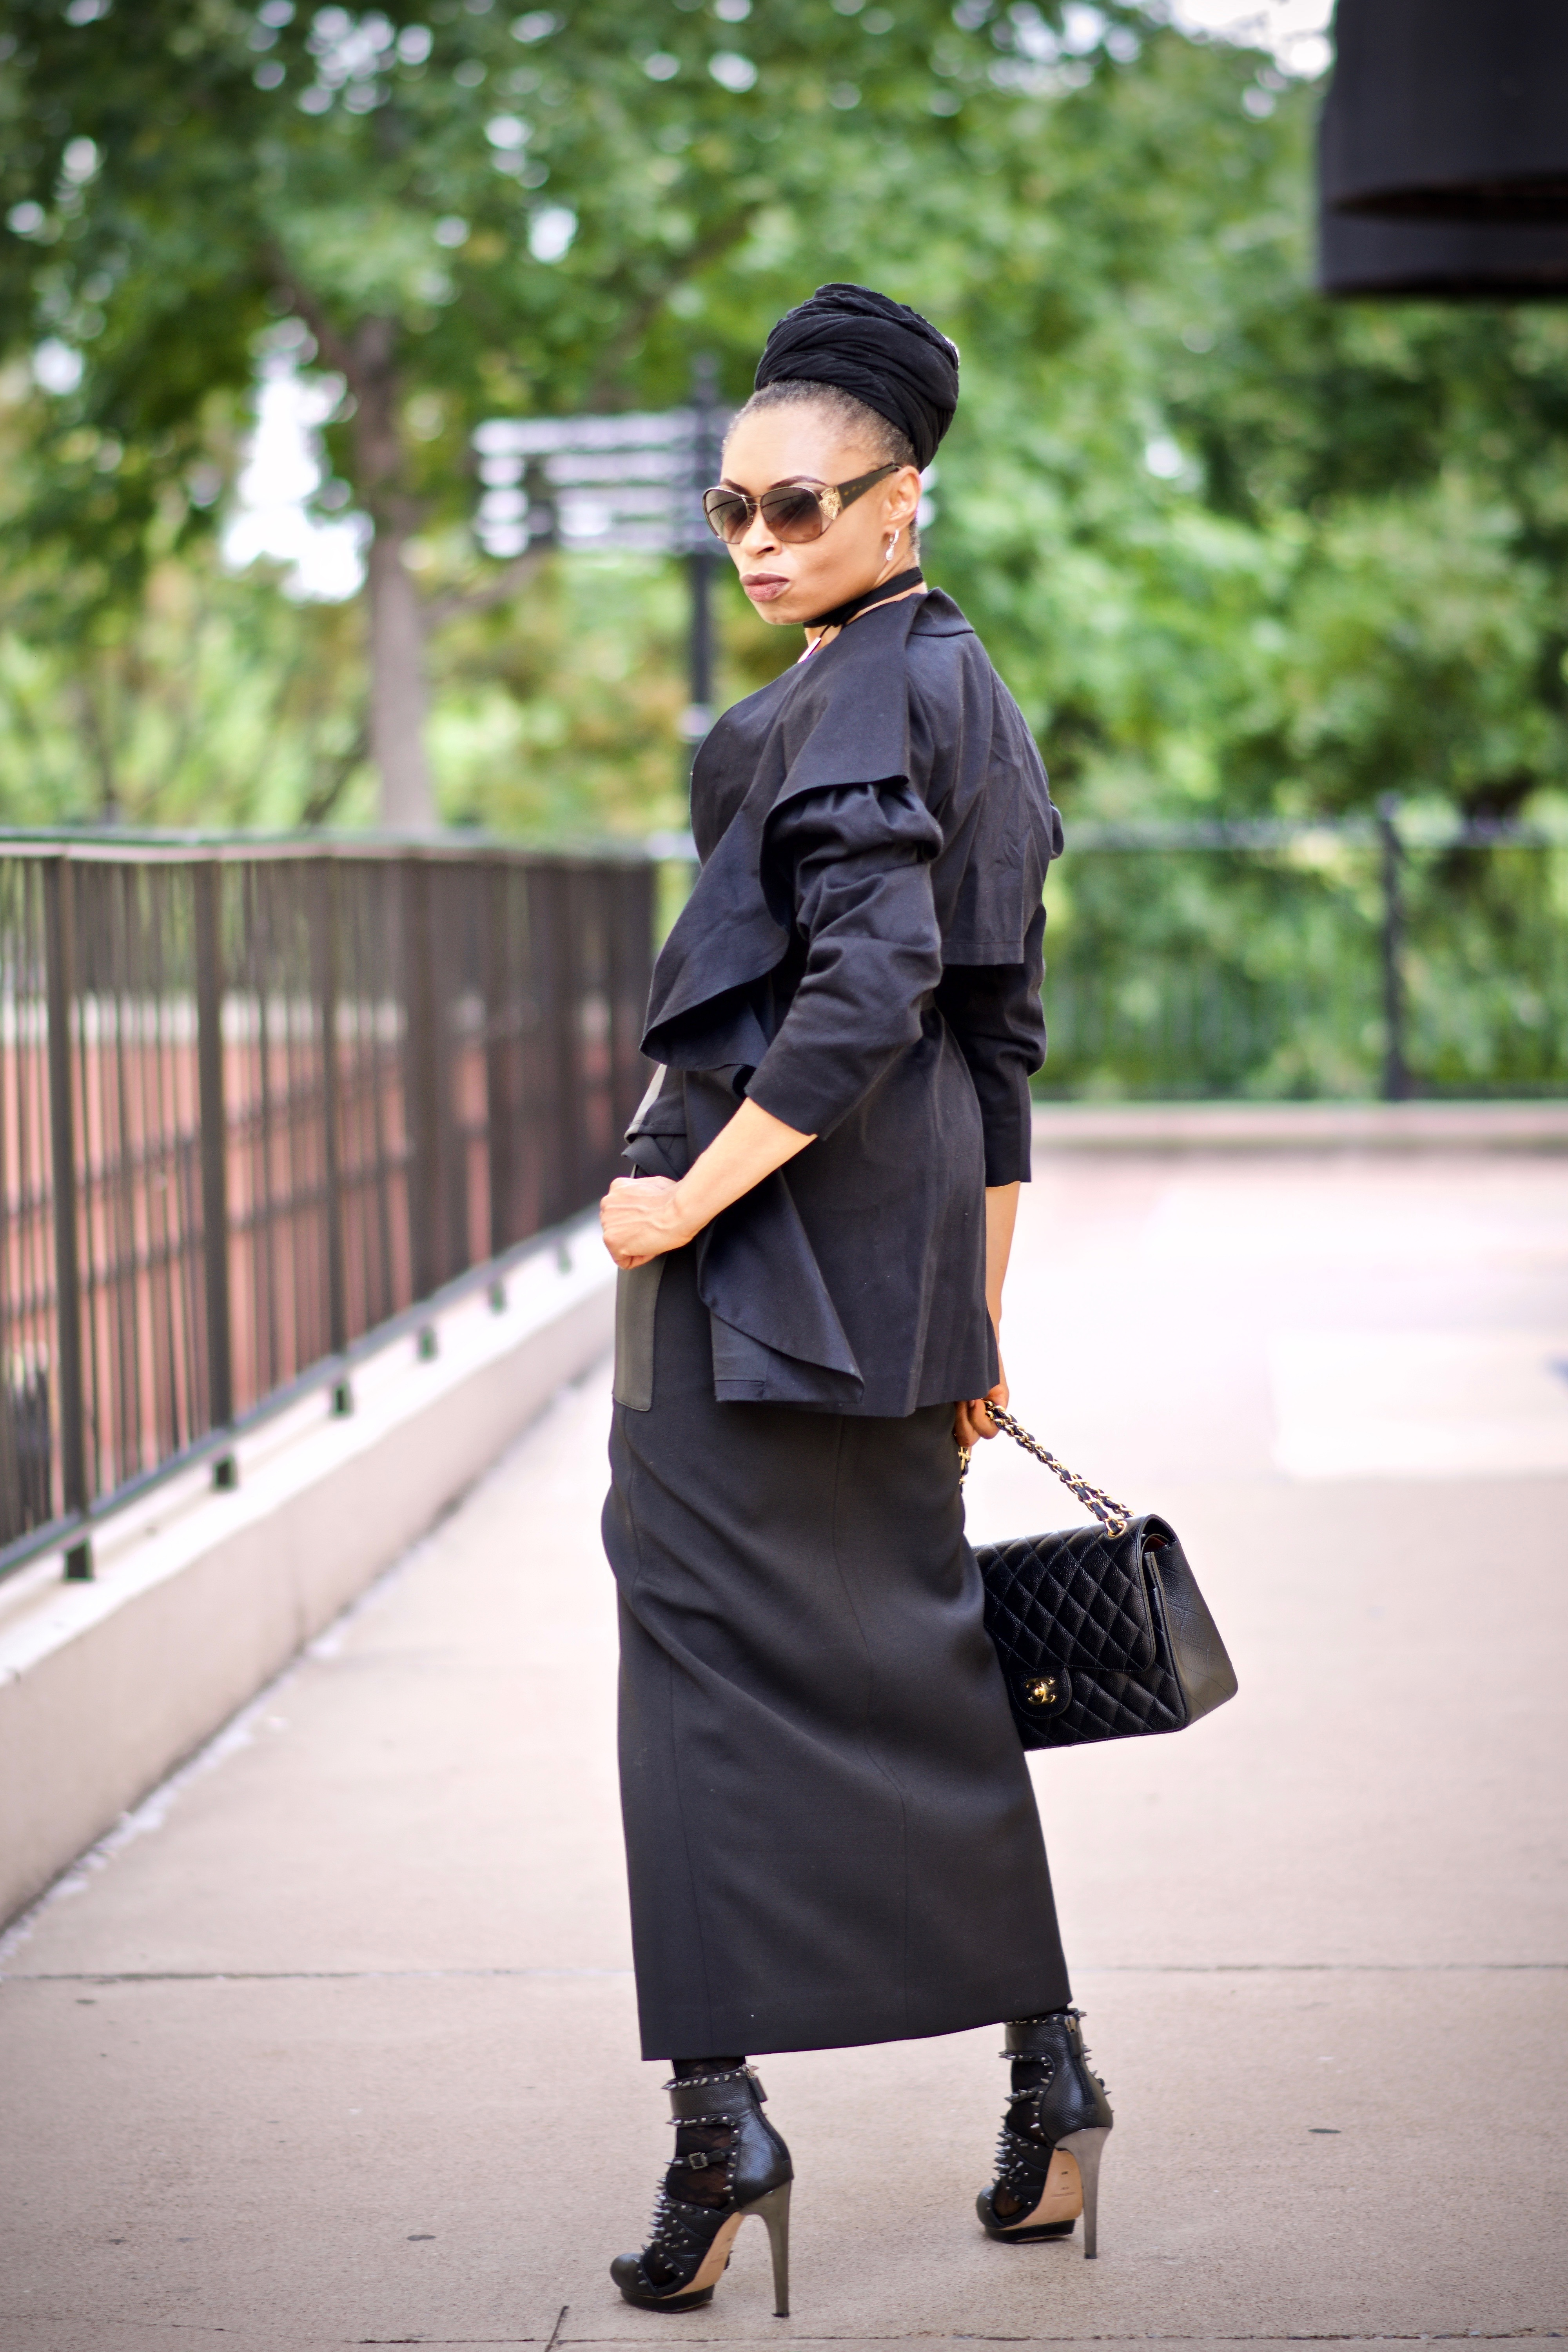 How to wear an all black monochrome look